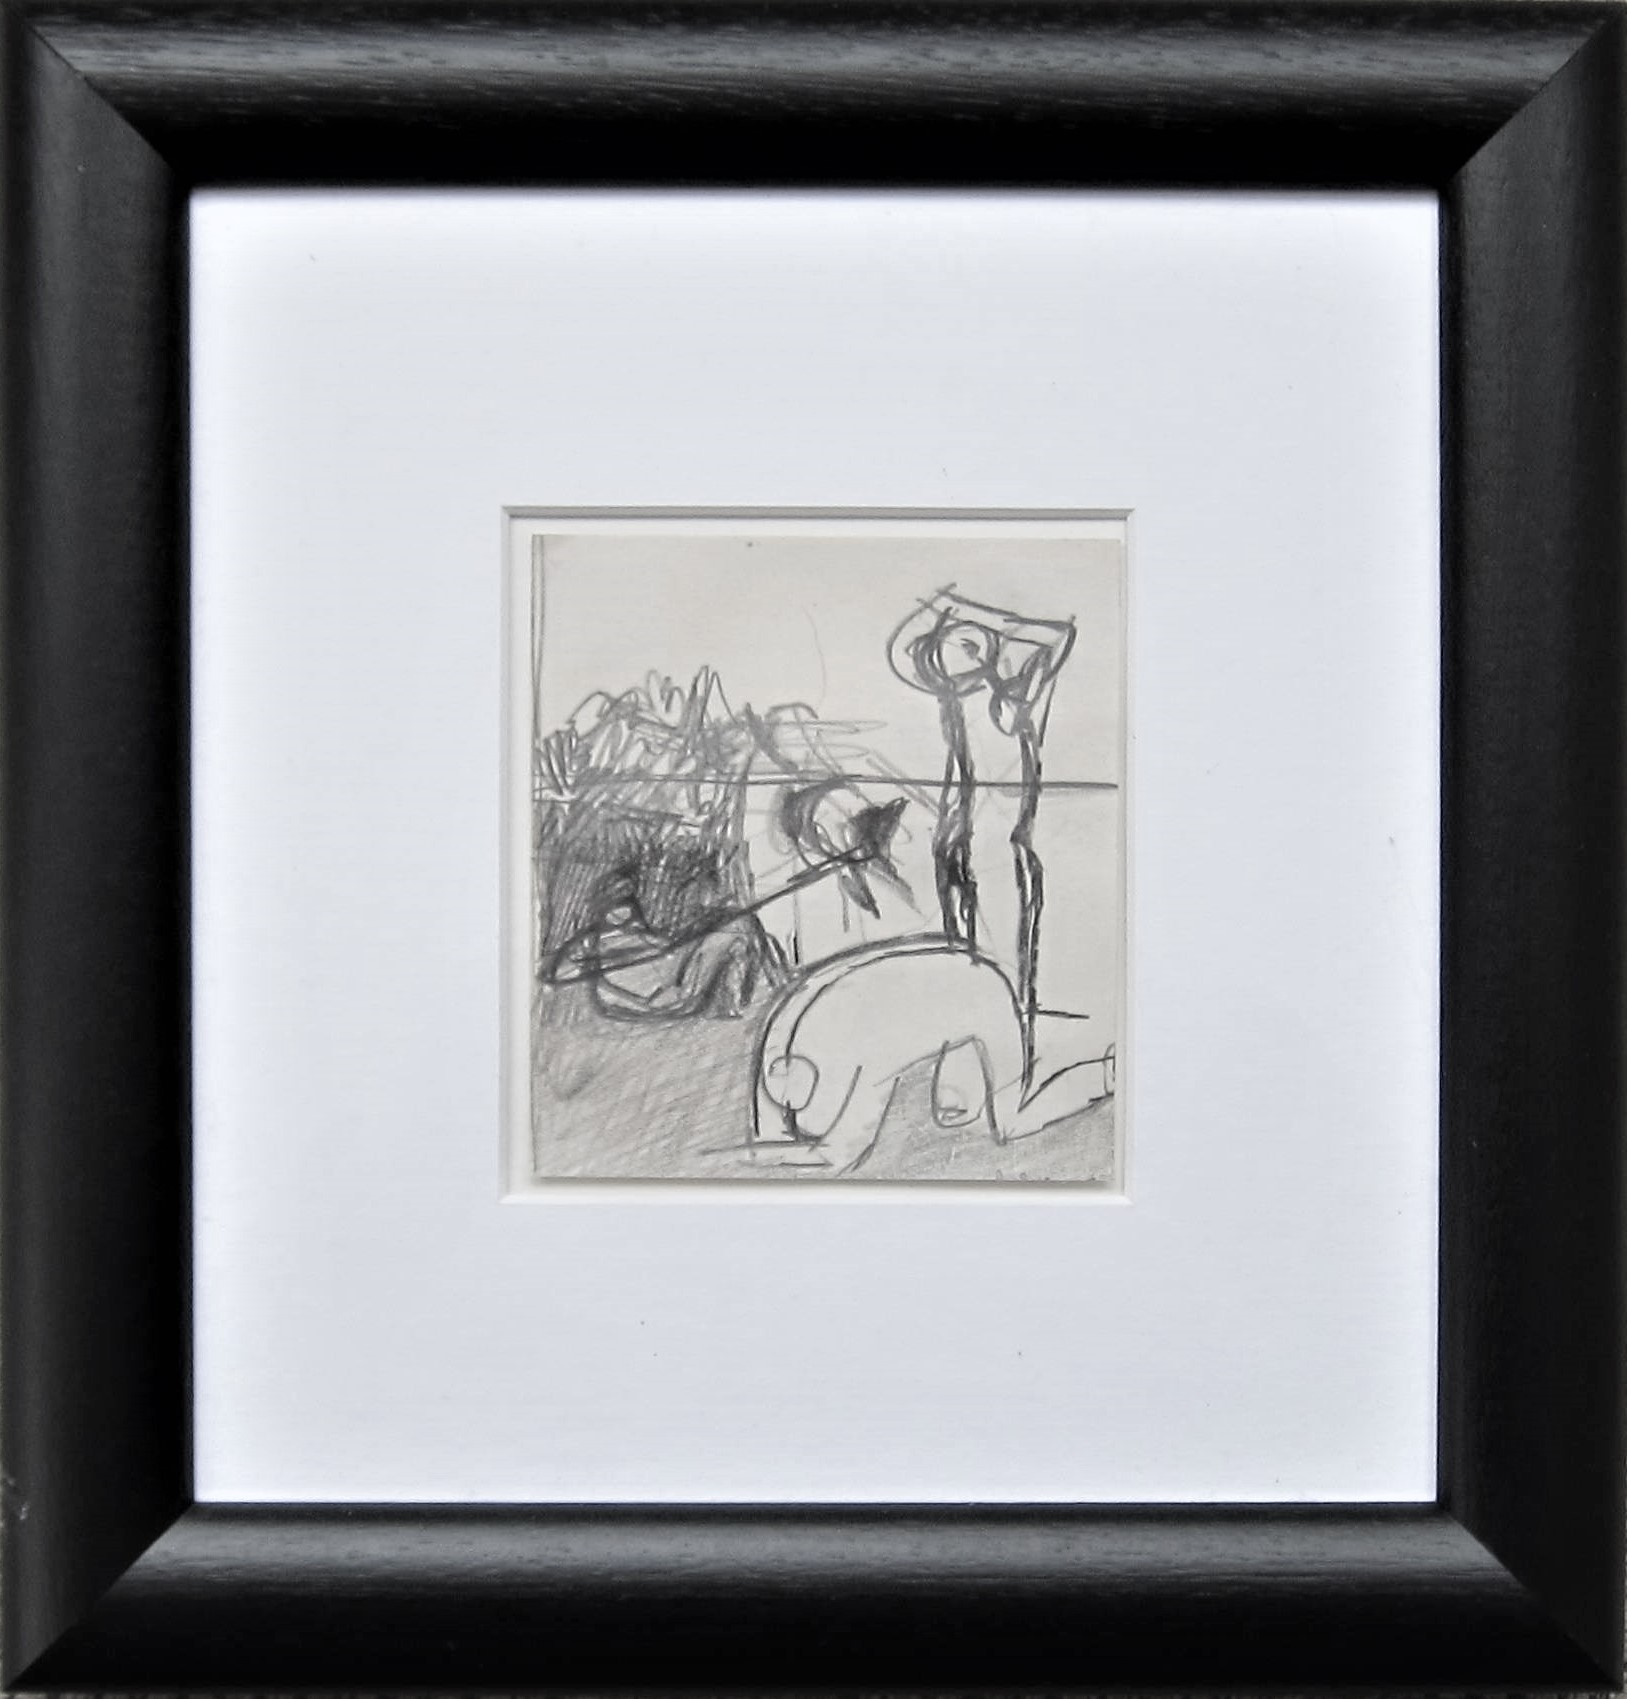 KEITH VAUGHAN [1912-77]. Figures. pencil on paper. 11 x 10 cm - overall including frame 28 x 27 - Image 2 of 2